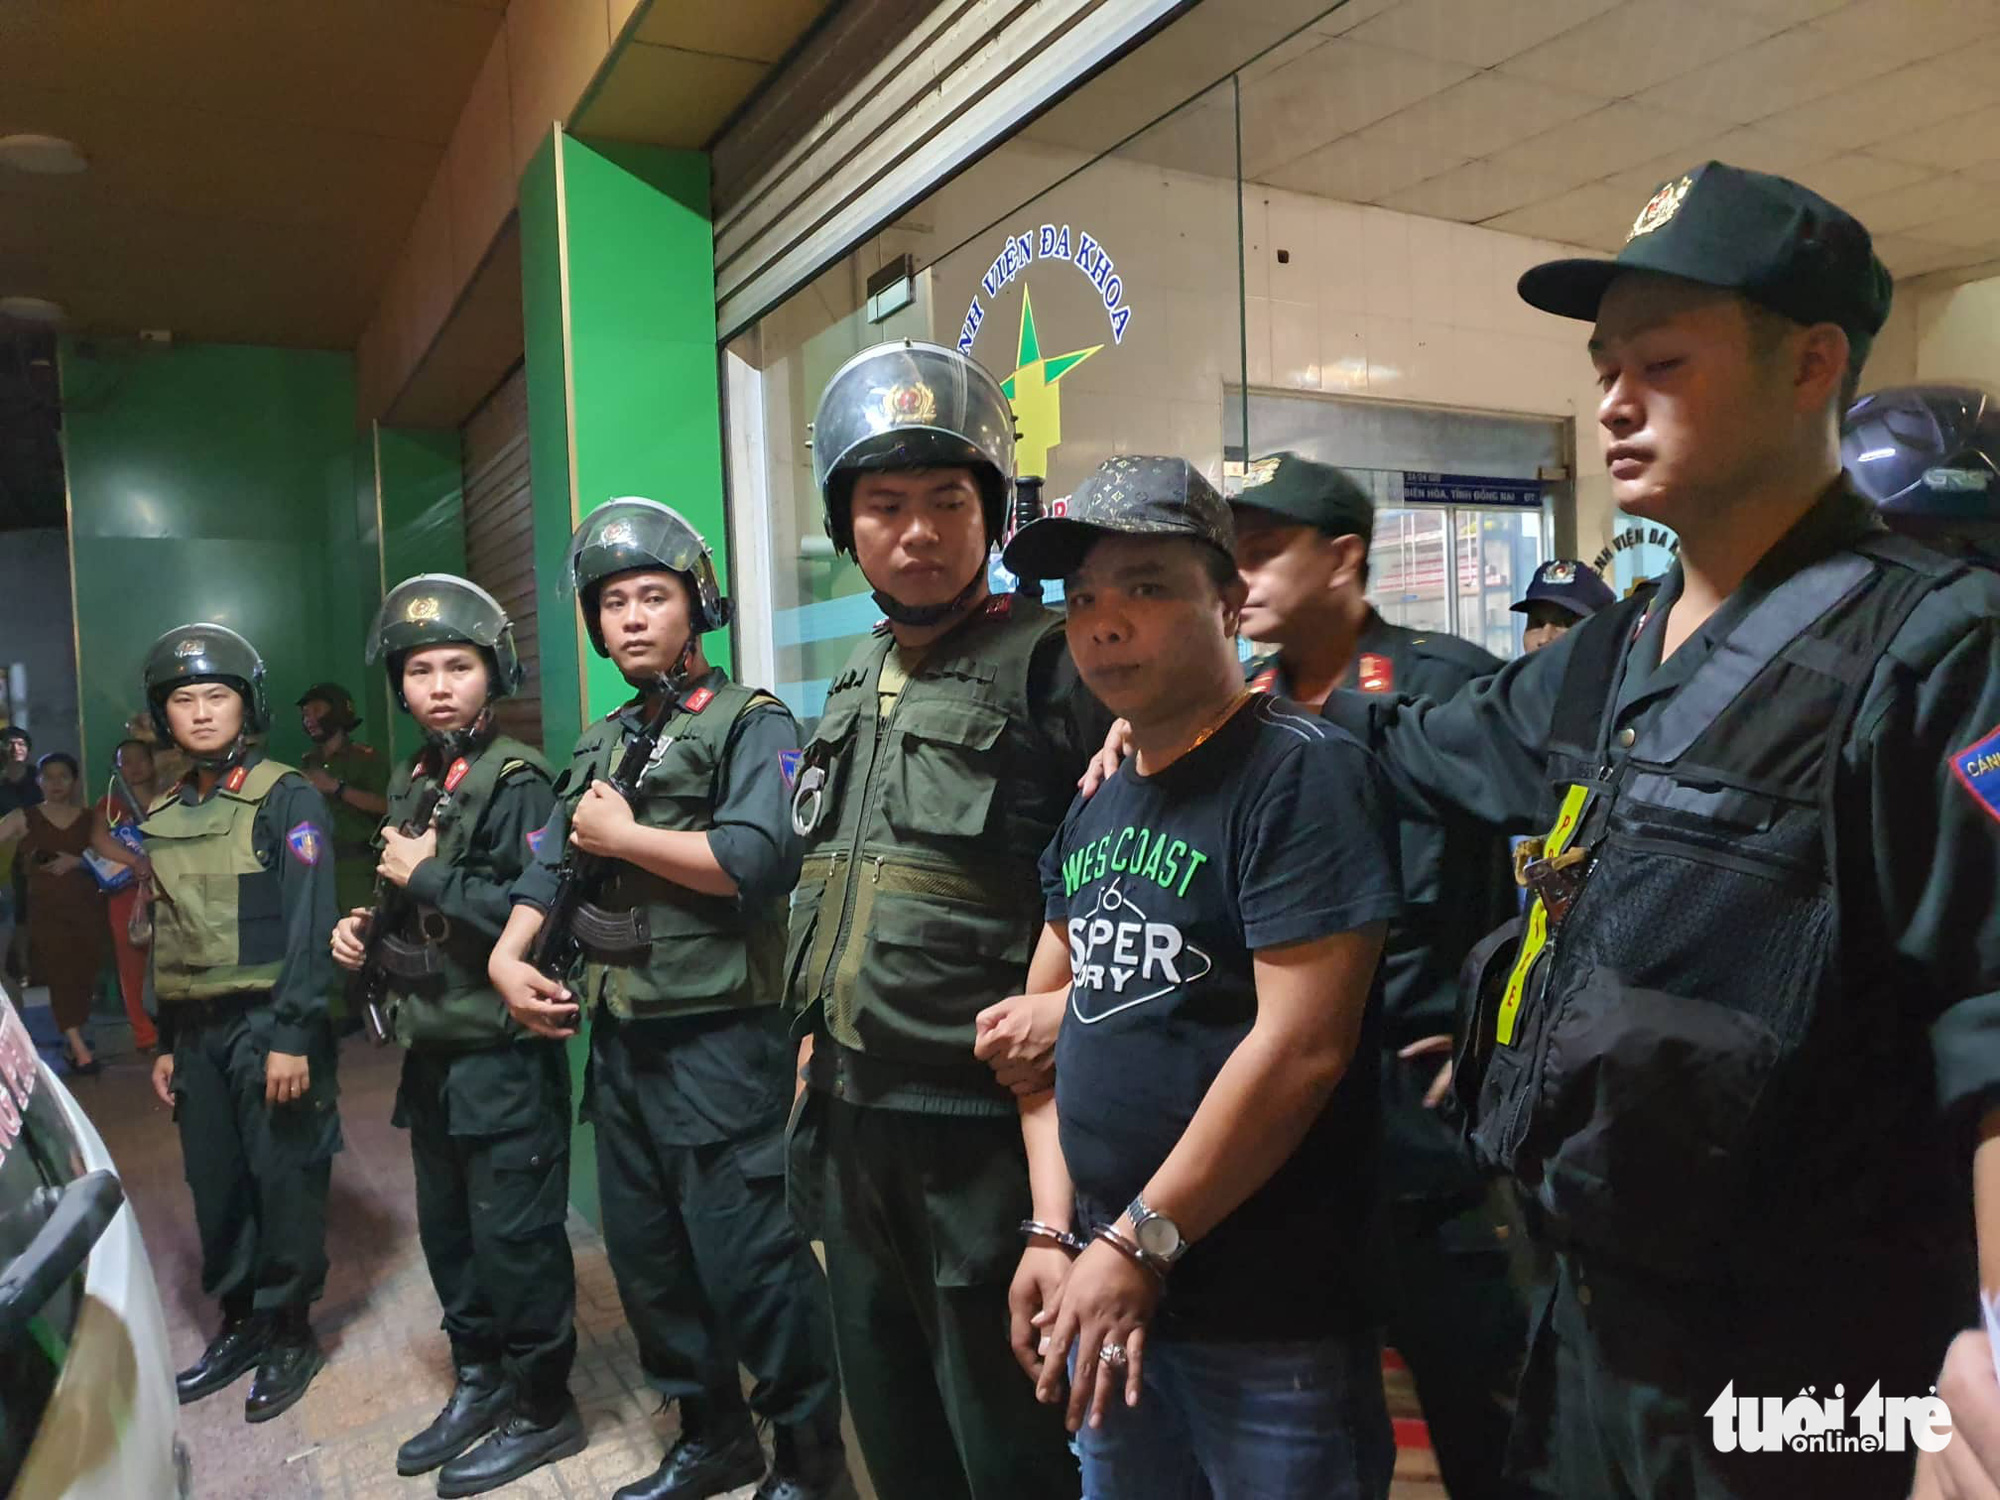 Police nab 10 members of debt collectiongang in southern Vietnamese province